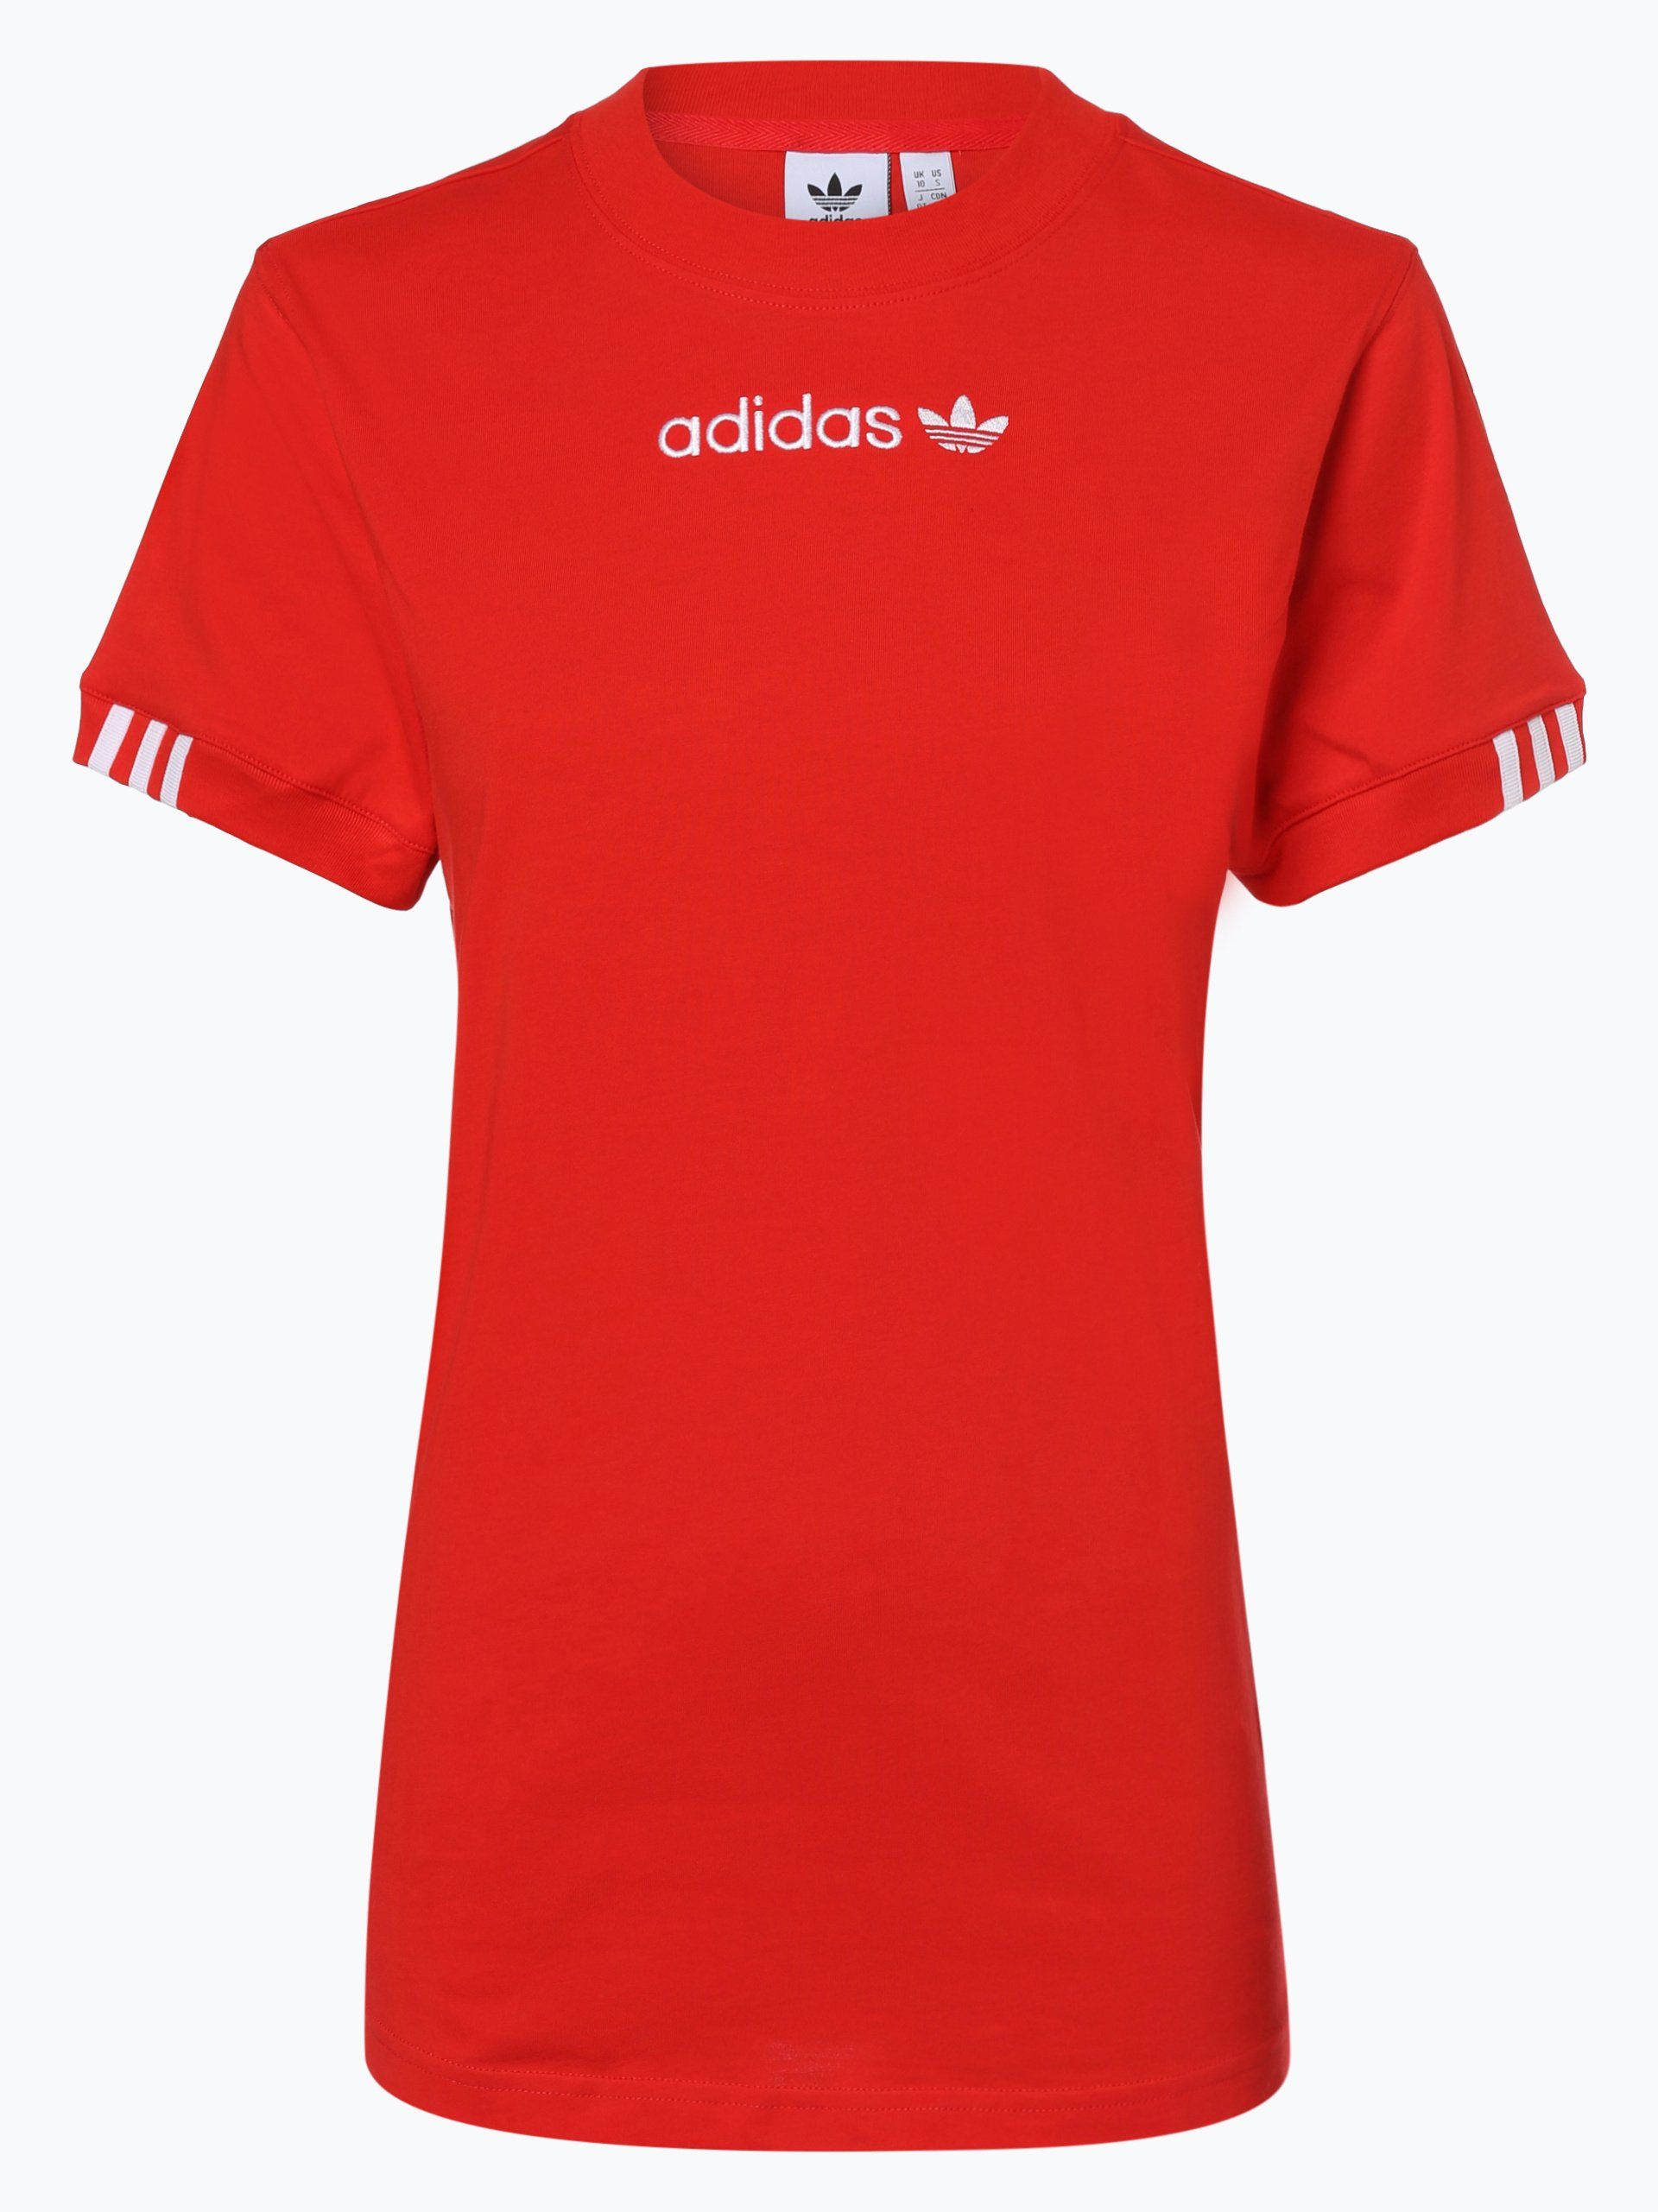 adidas Originals Damen T-Shirt